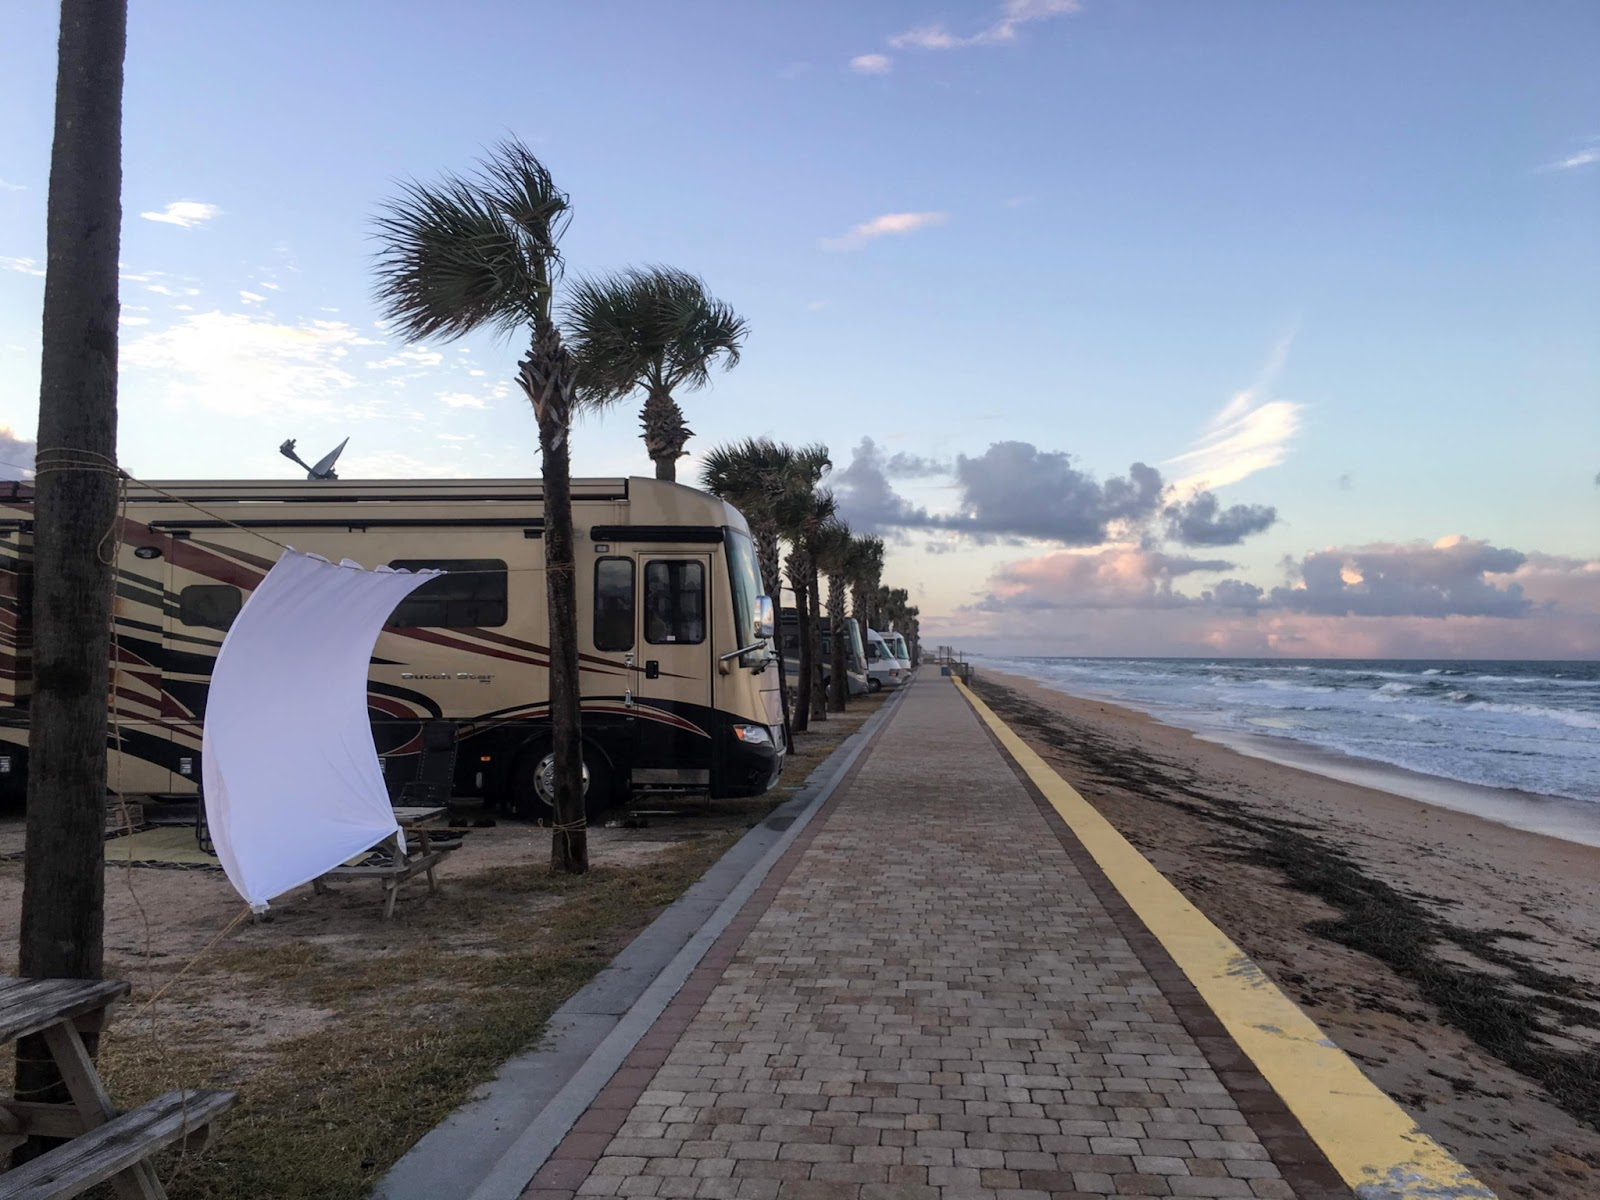 Class A RV parked at a beach-side campsite